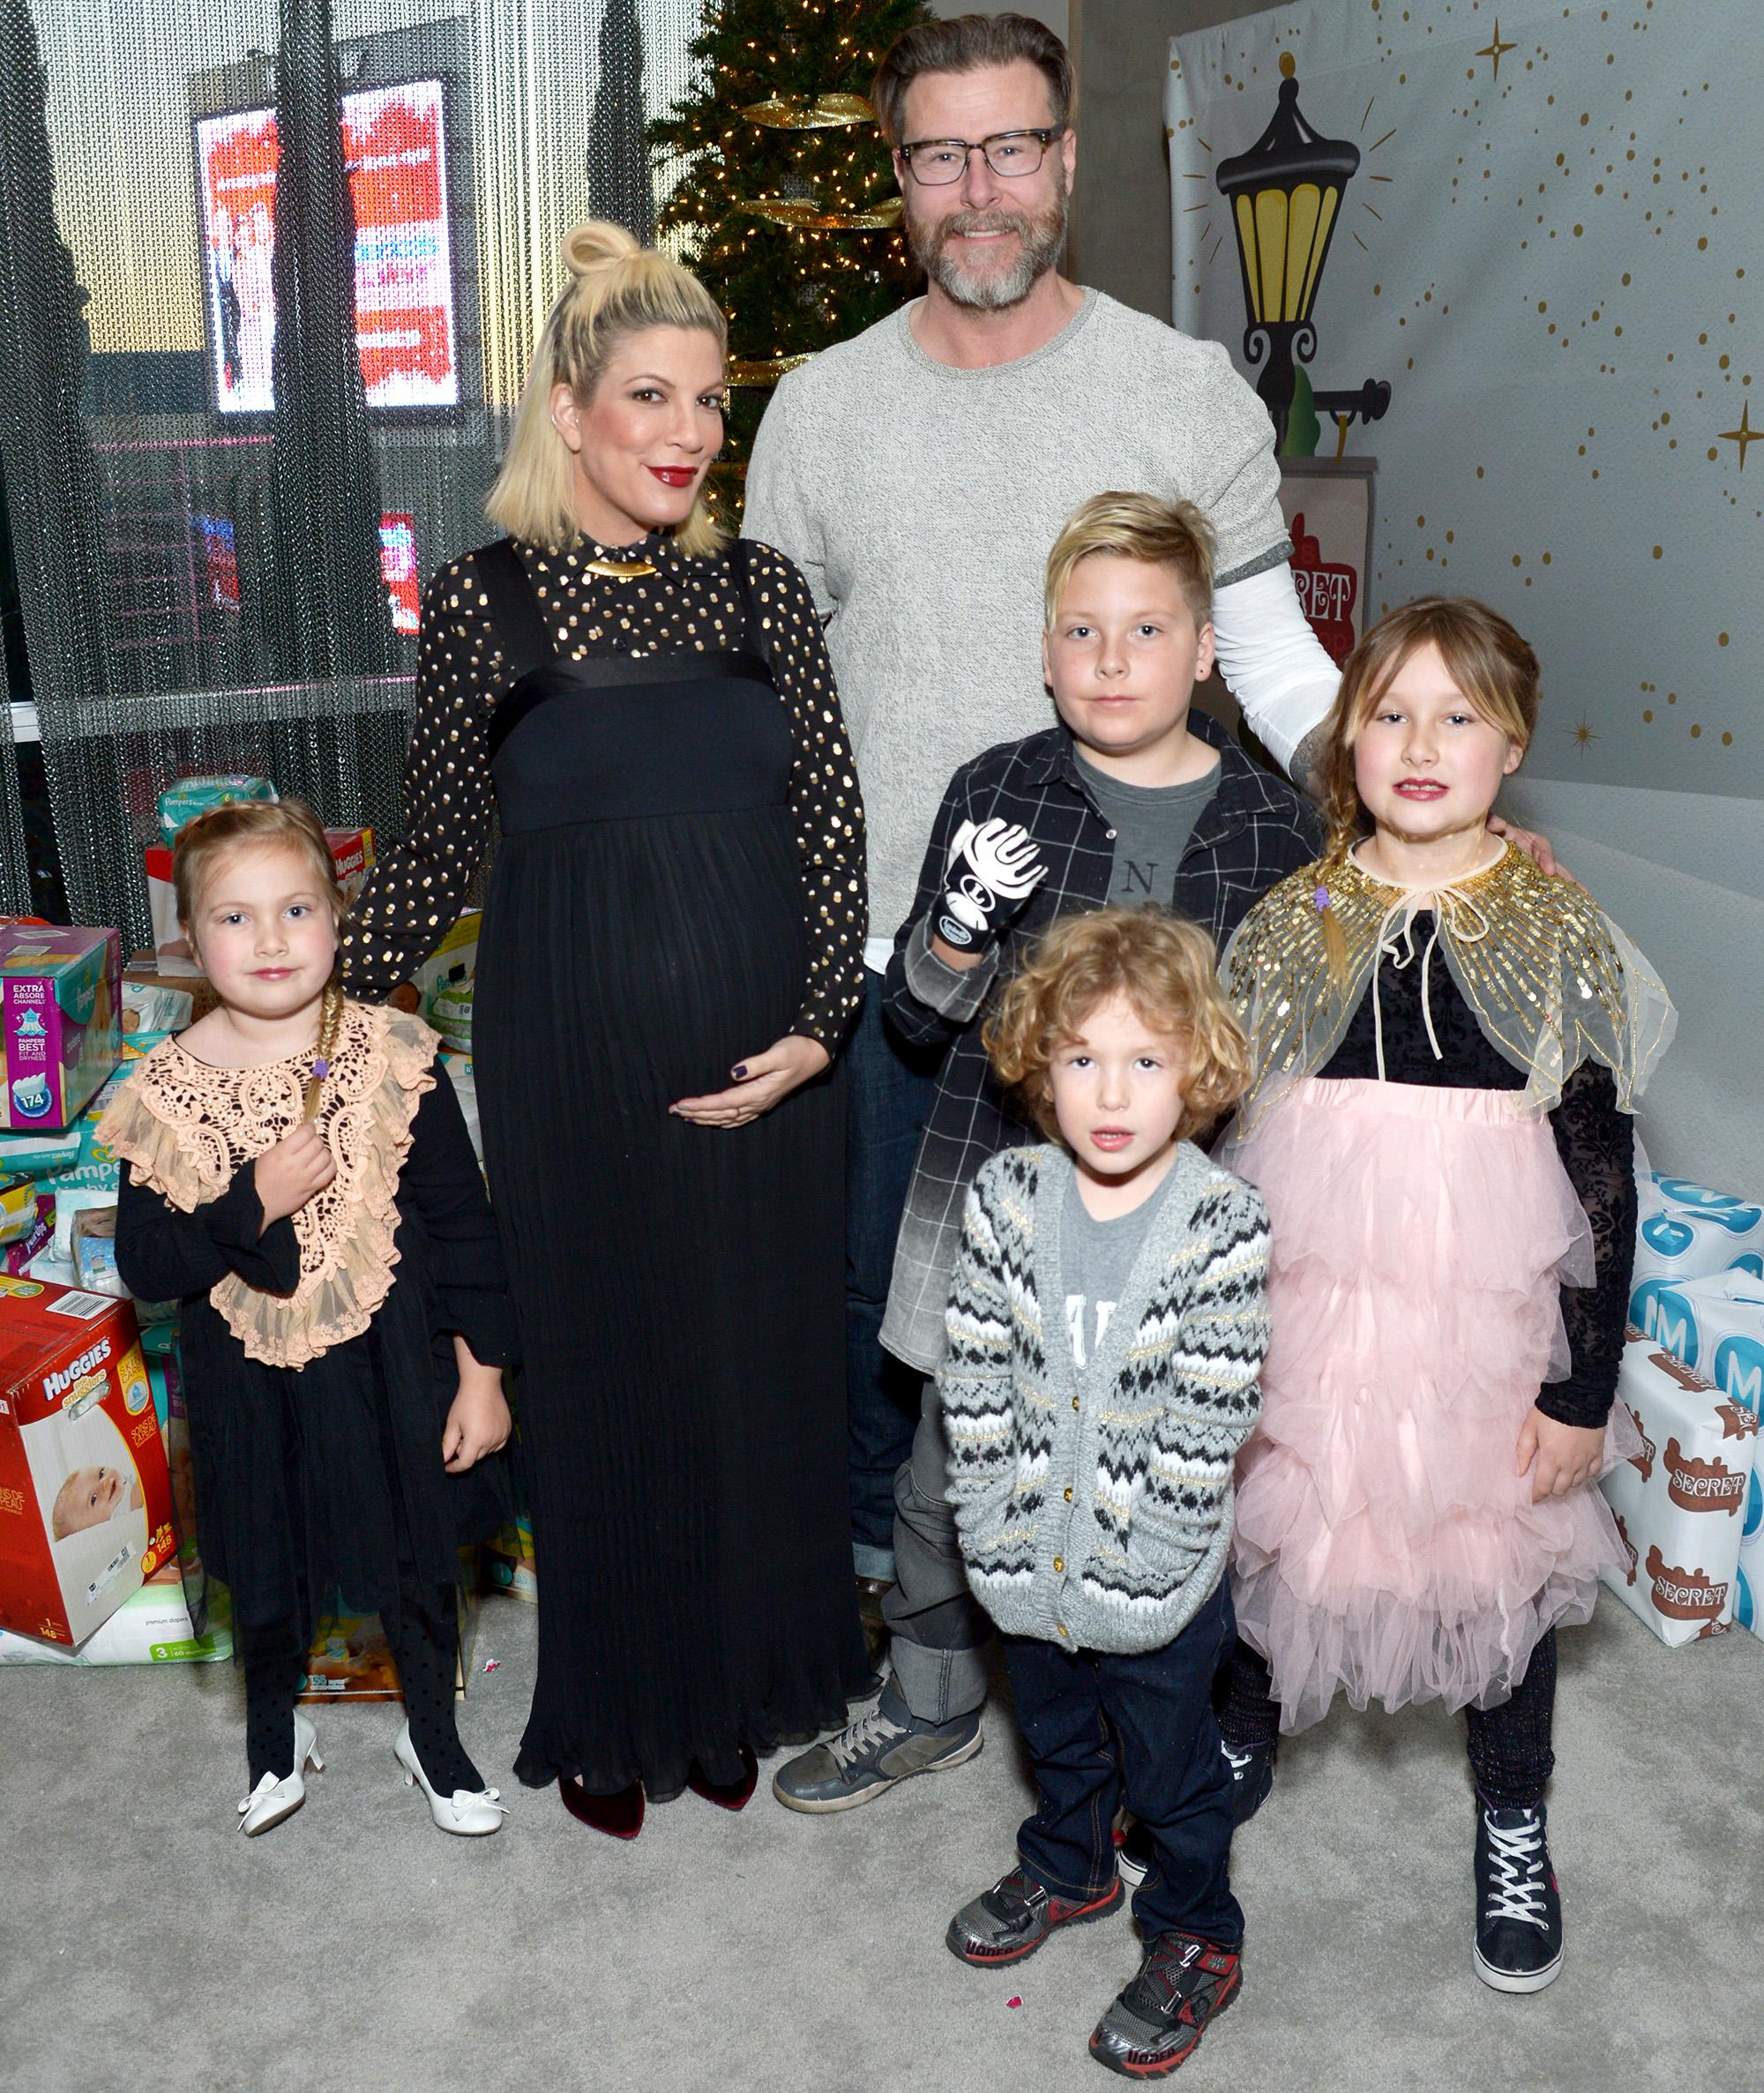 pregnant tori spelling steps out with her family for early christmas celebrations